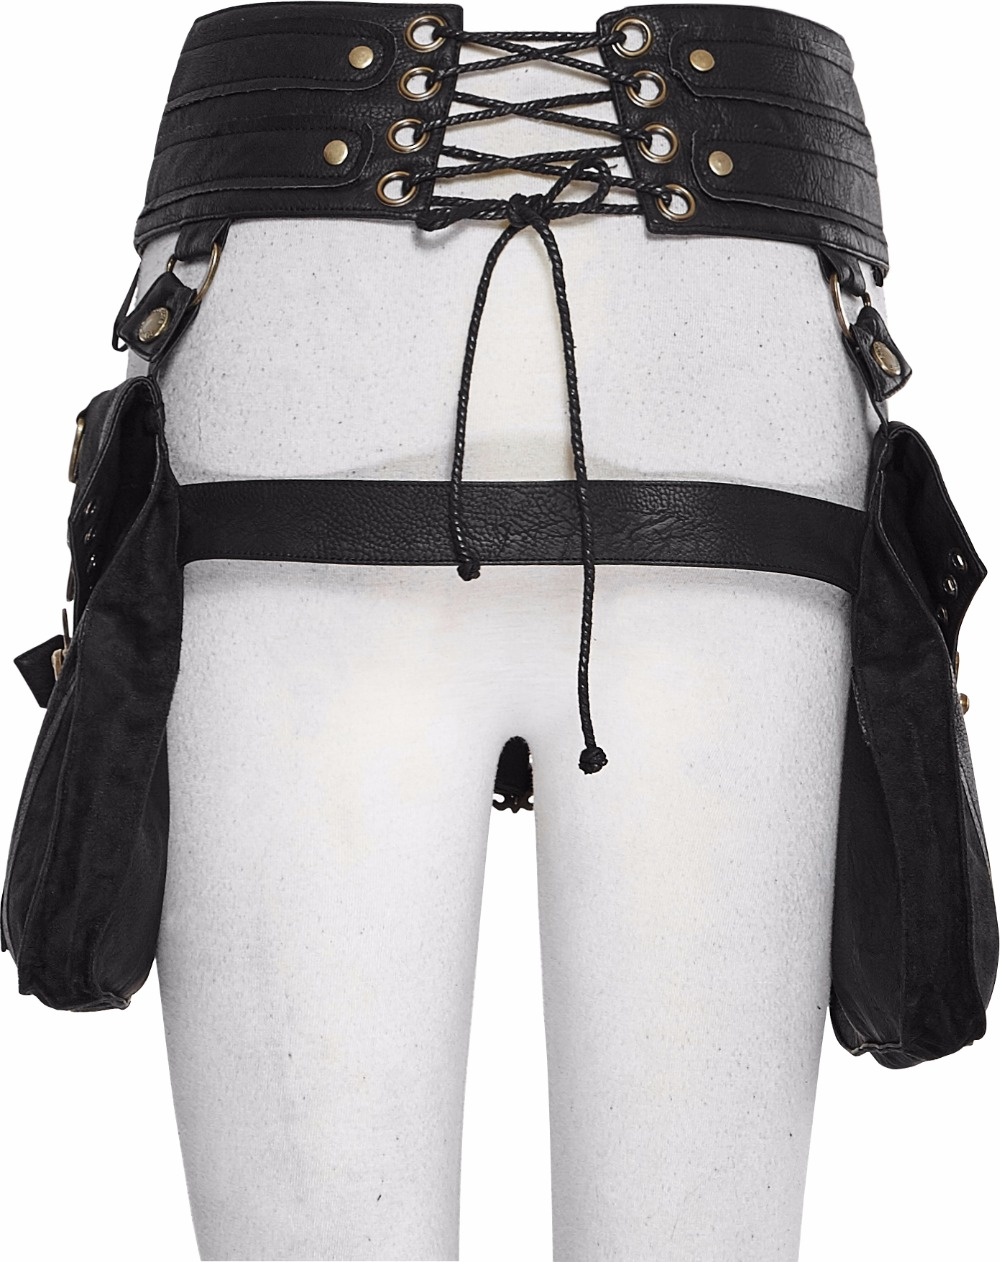 Steampunk Gothic Ladies Double Waist Belt Bag With Two Buckles Black PU Leather Waist Belts Bags With Zipper Back Lace-Up Bags 2